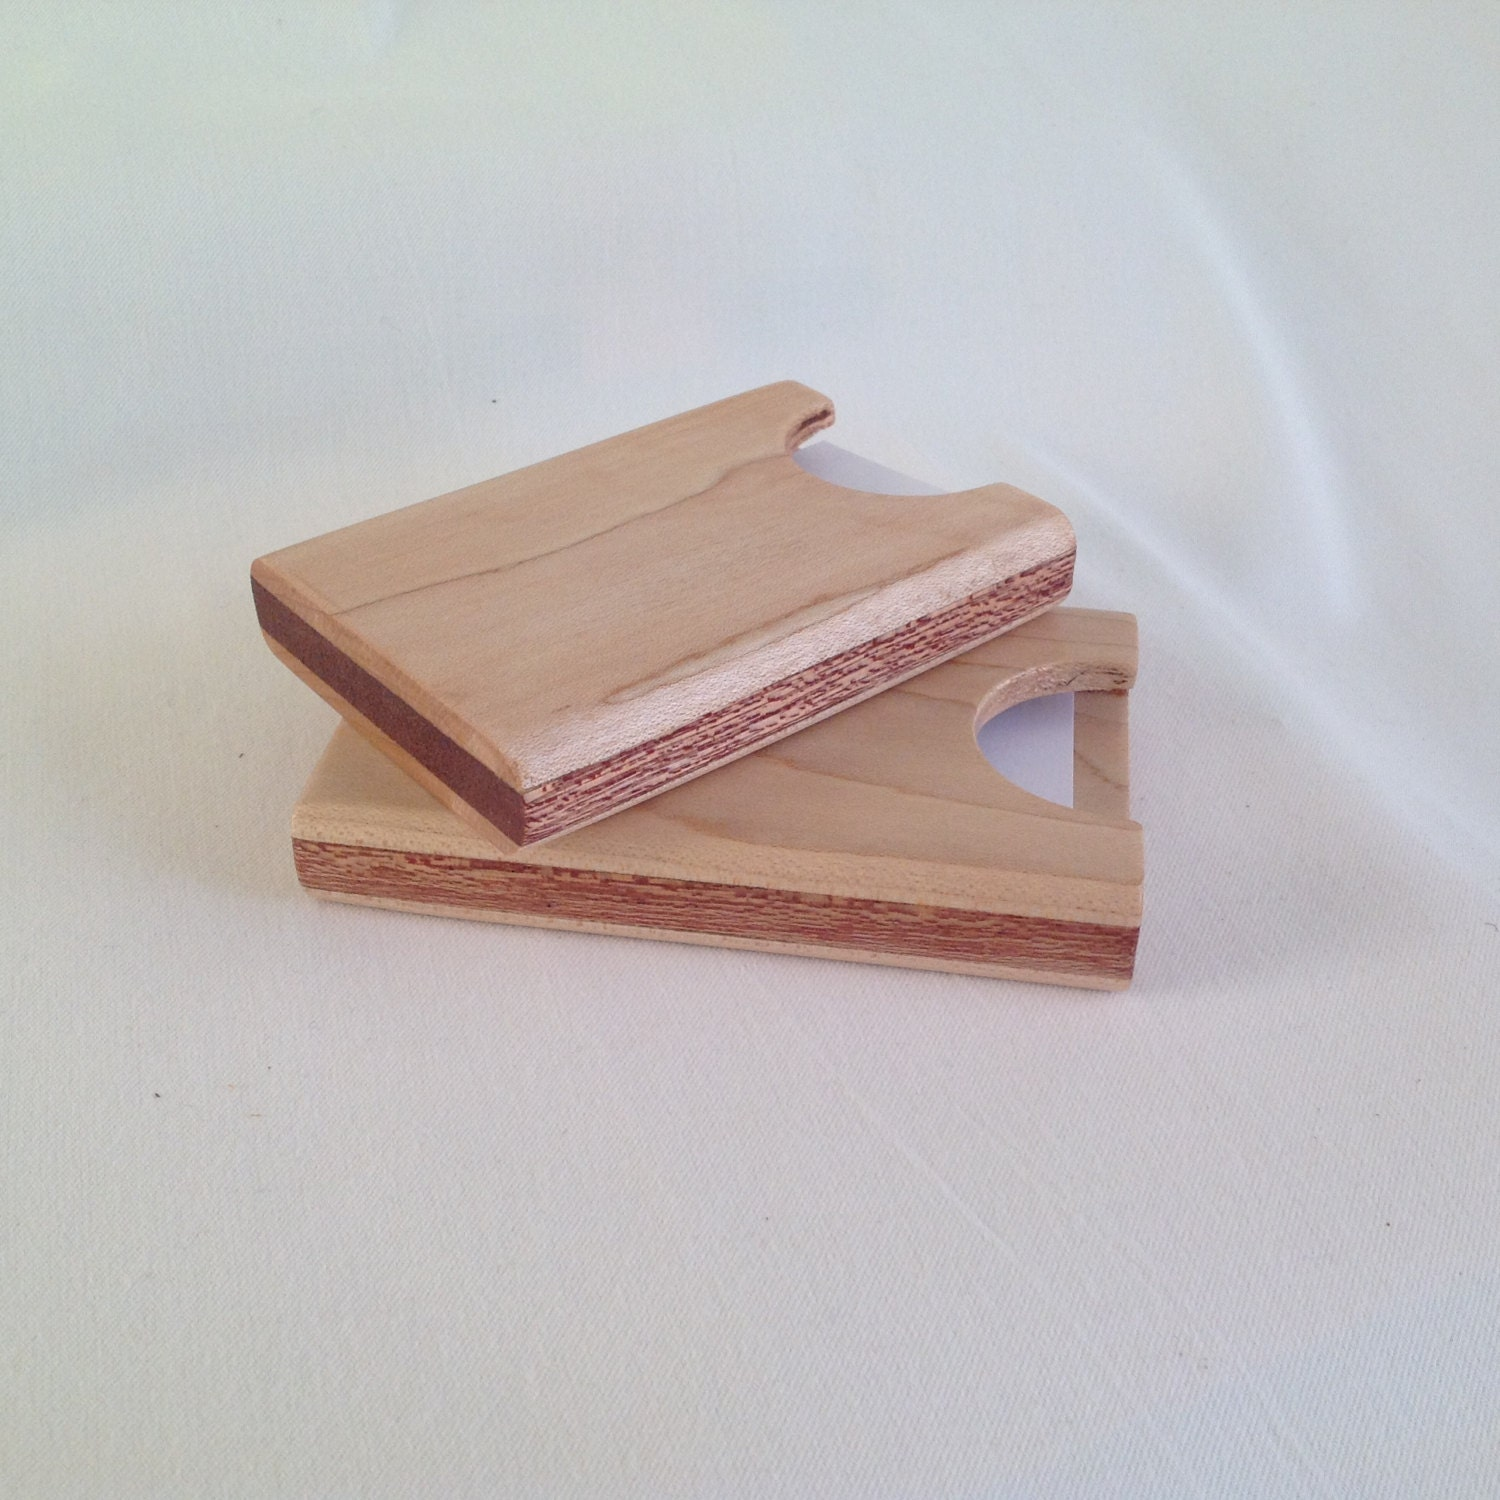 Wooden business card holder handmade from maple by AikiCrafts